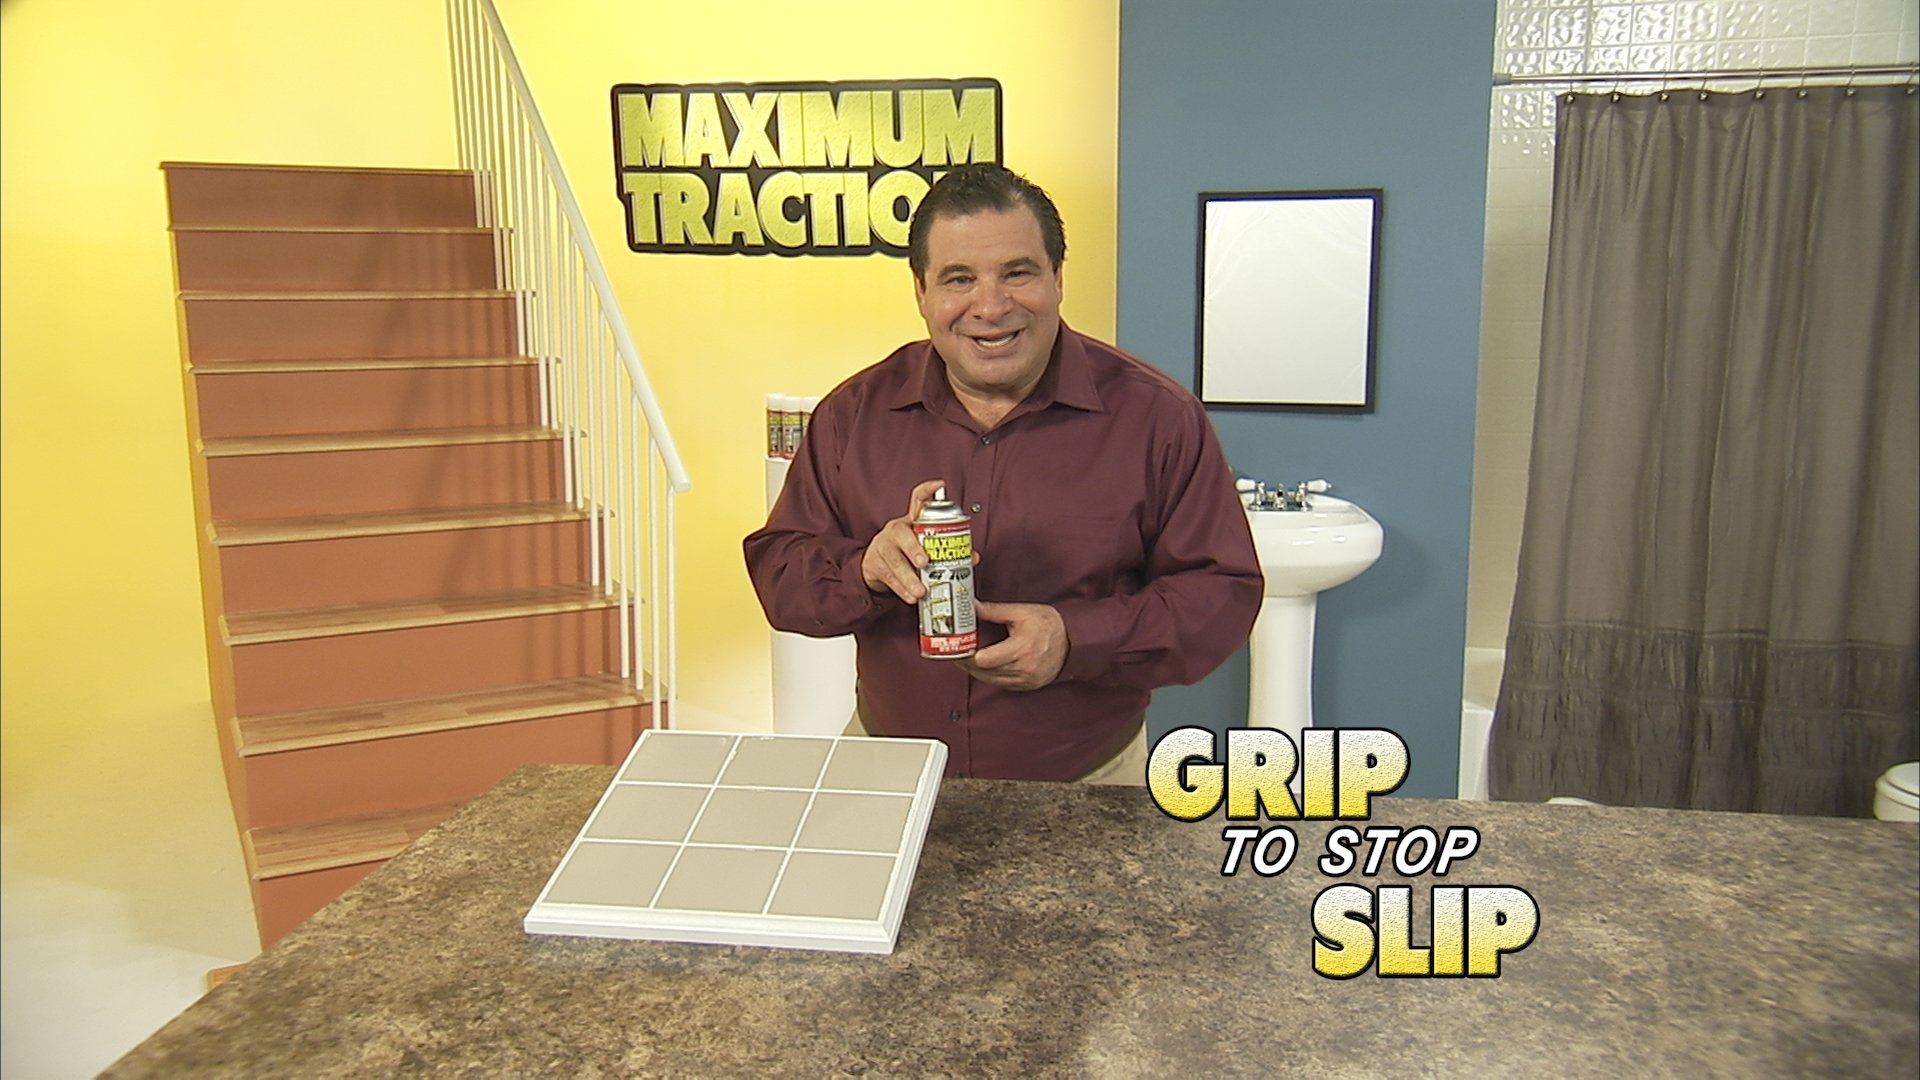 Maximum Traction Glow Anti-Slip Coating Spray for Wet or Slick Surfaces(Glows in the Dark!)